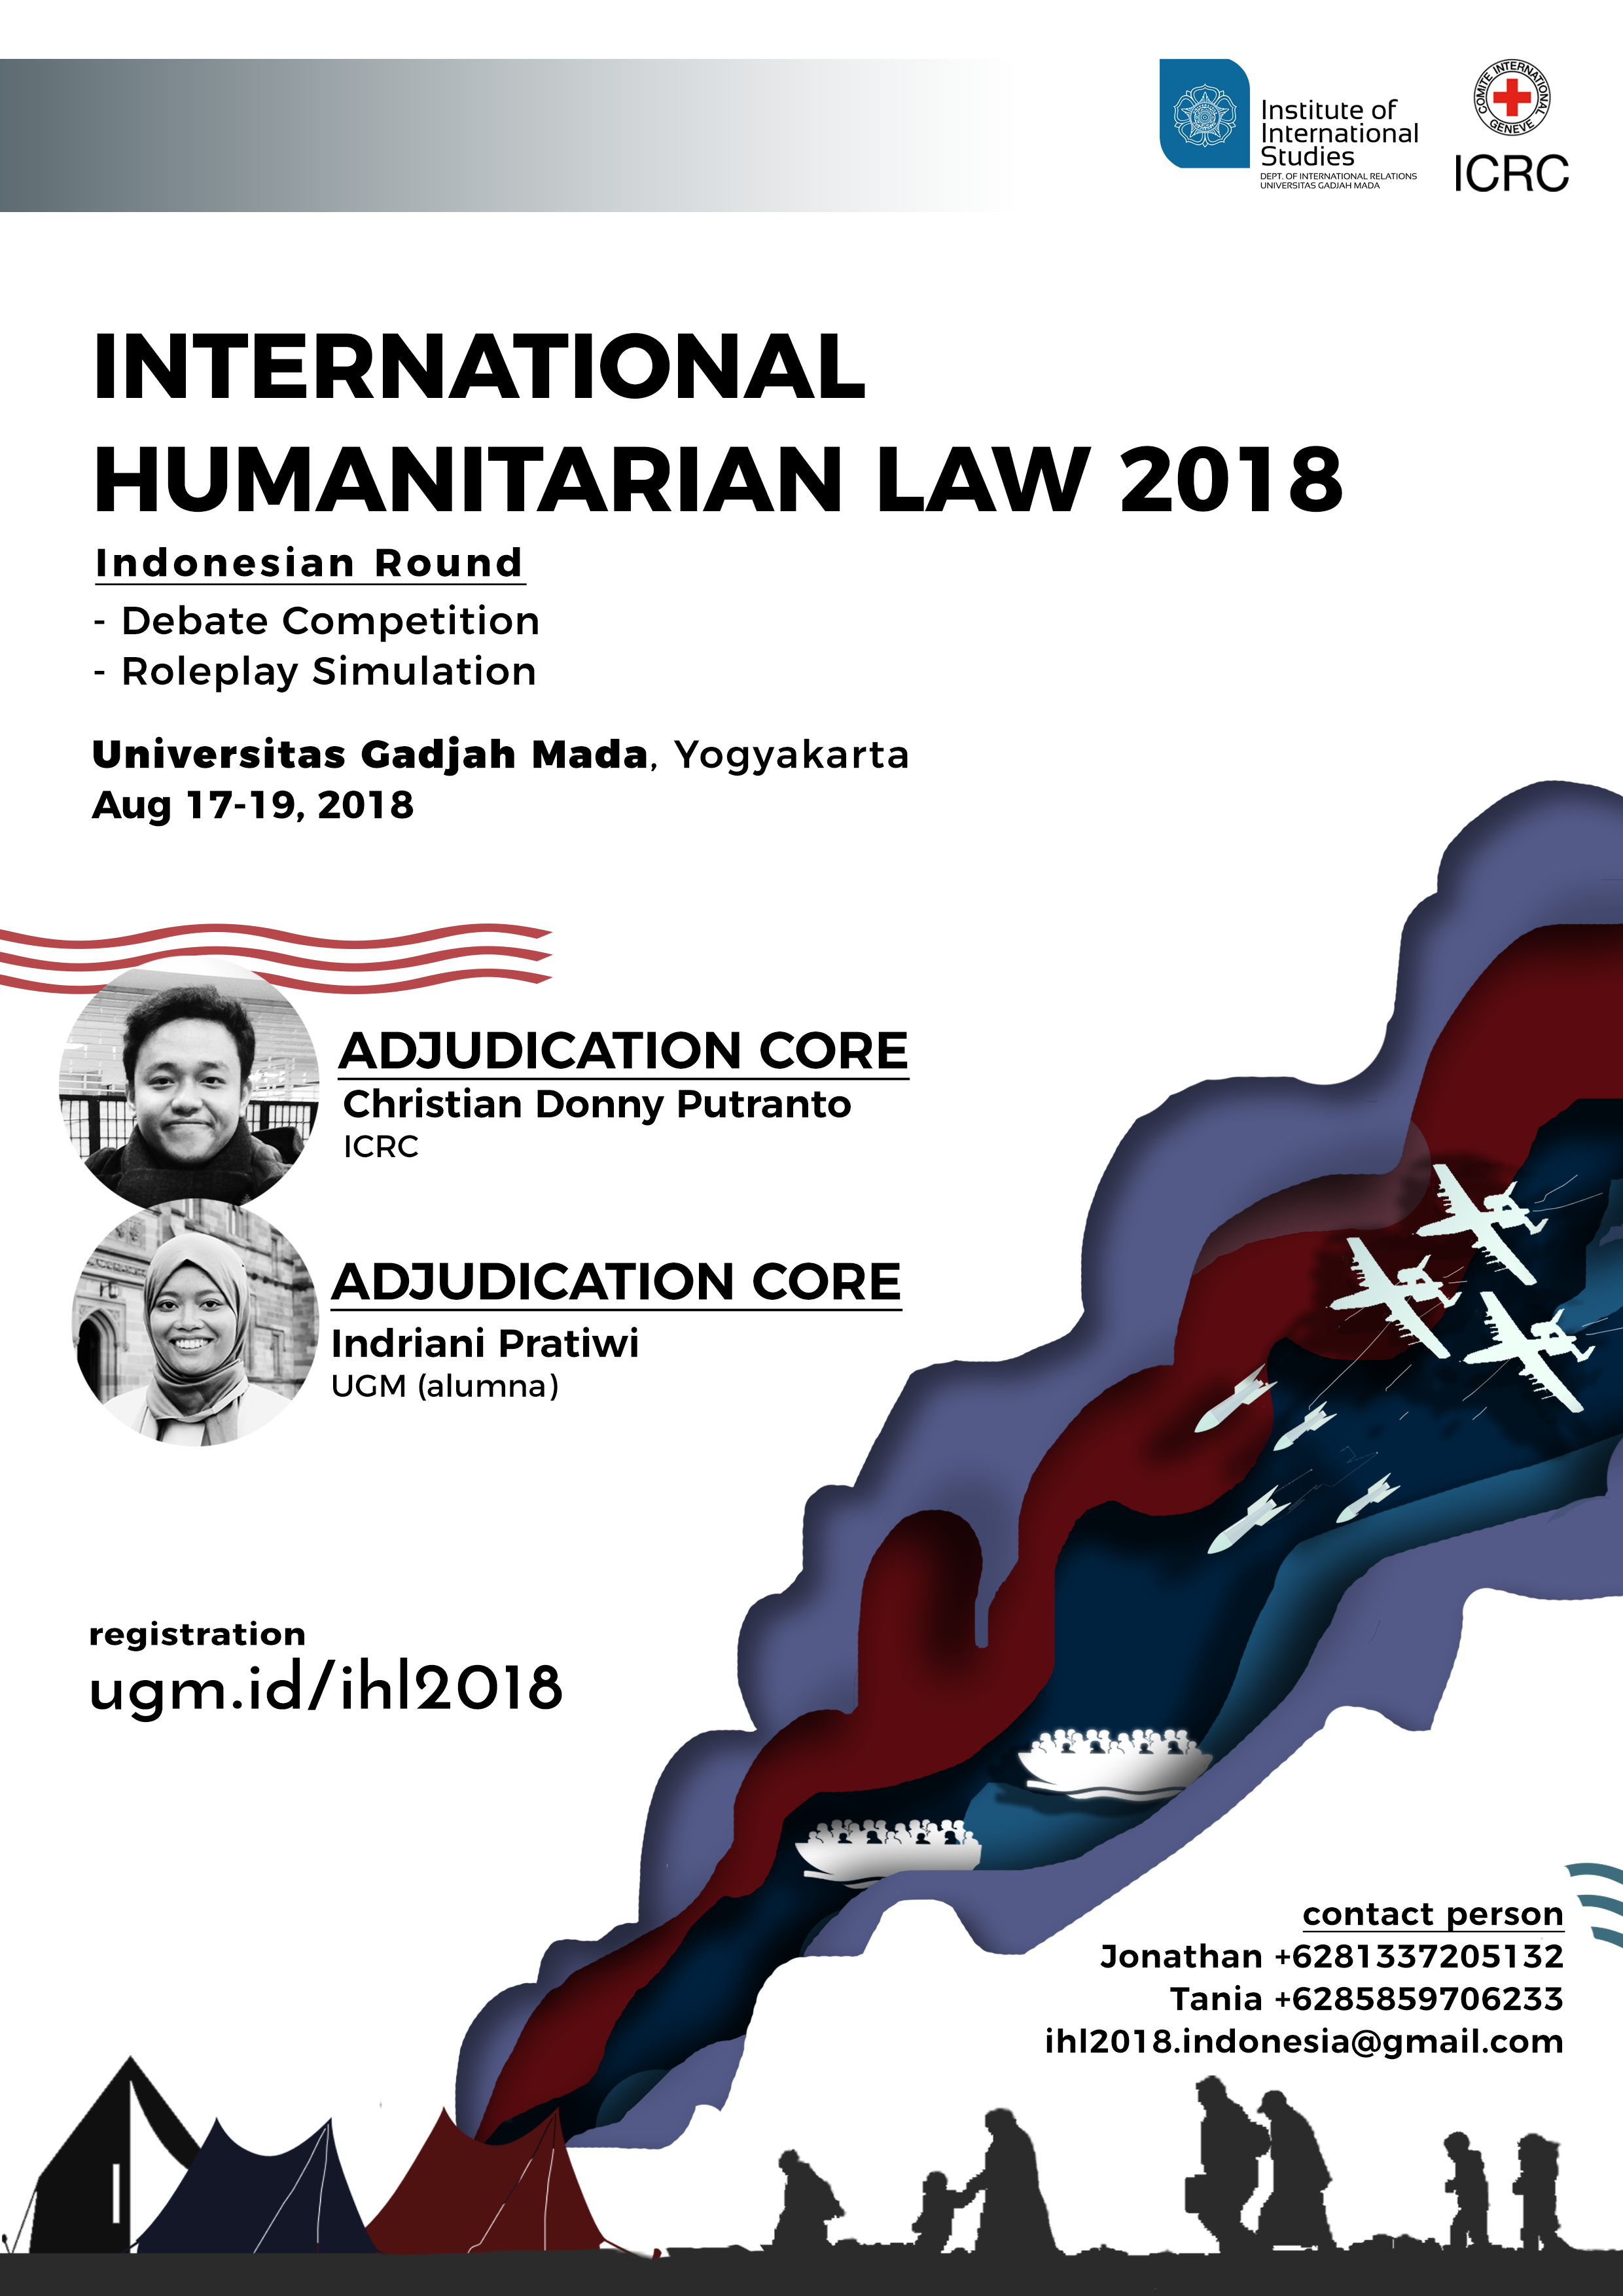 12th International Humanitarian Law Debate Competition & Roleplay Simulation